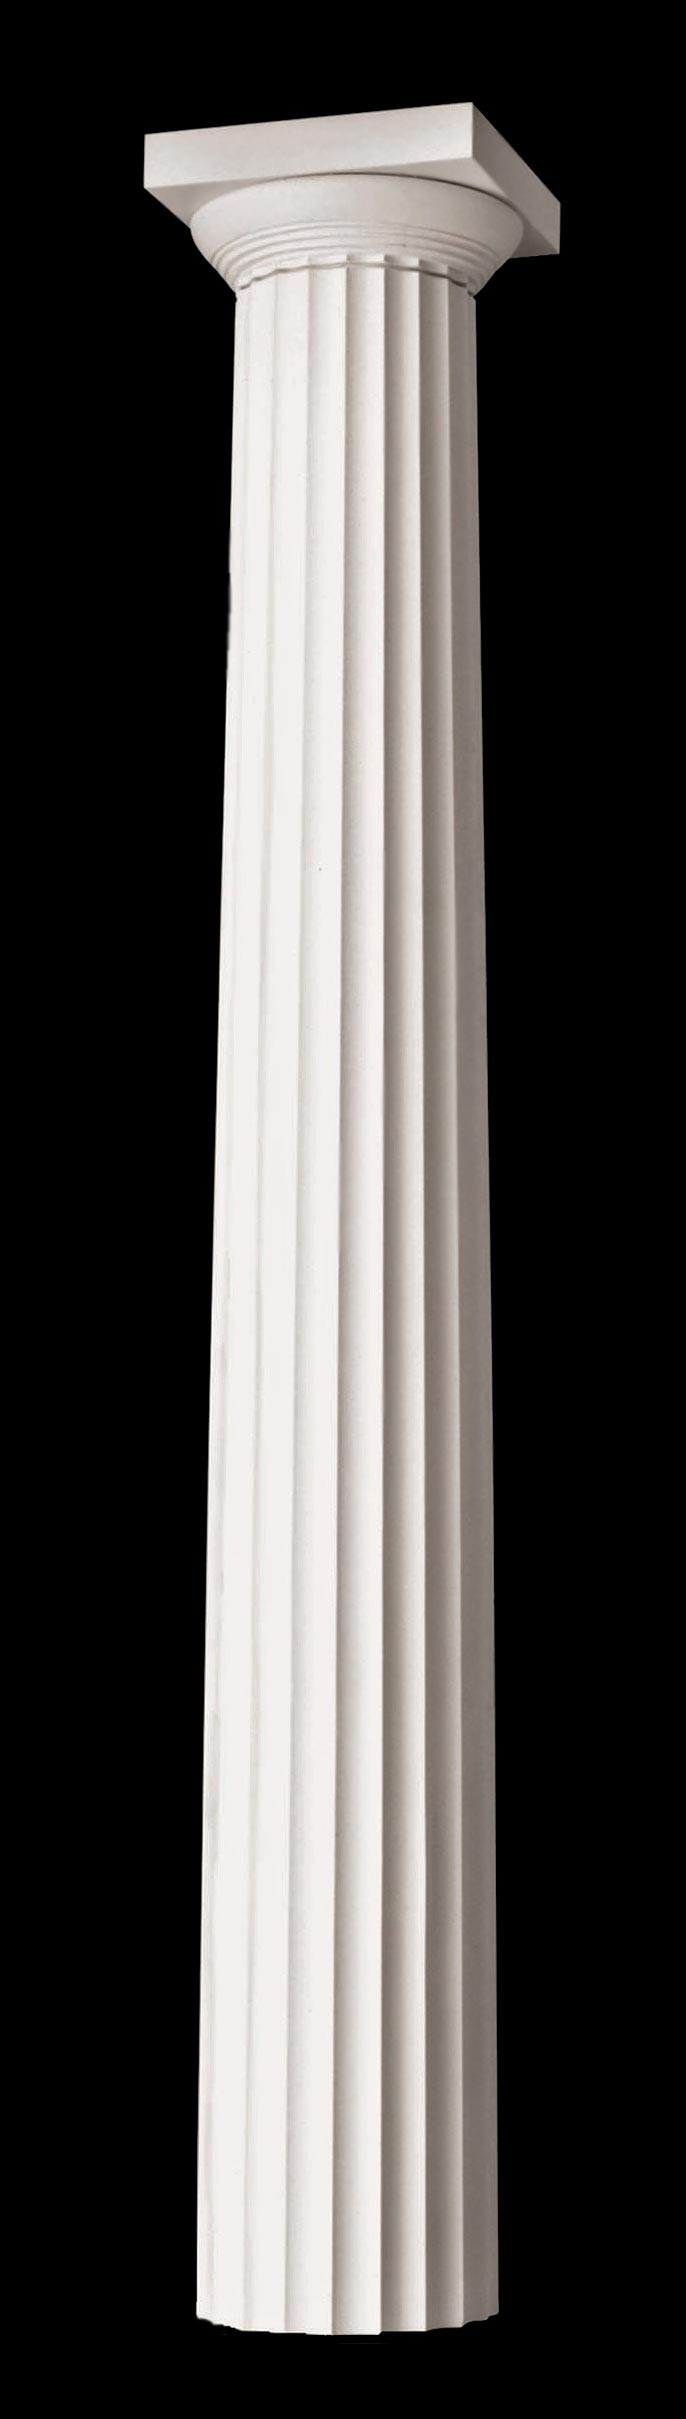 Fluted Architectural Greek Doric Wood Columns - CSI Code: 06440 ...